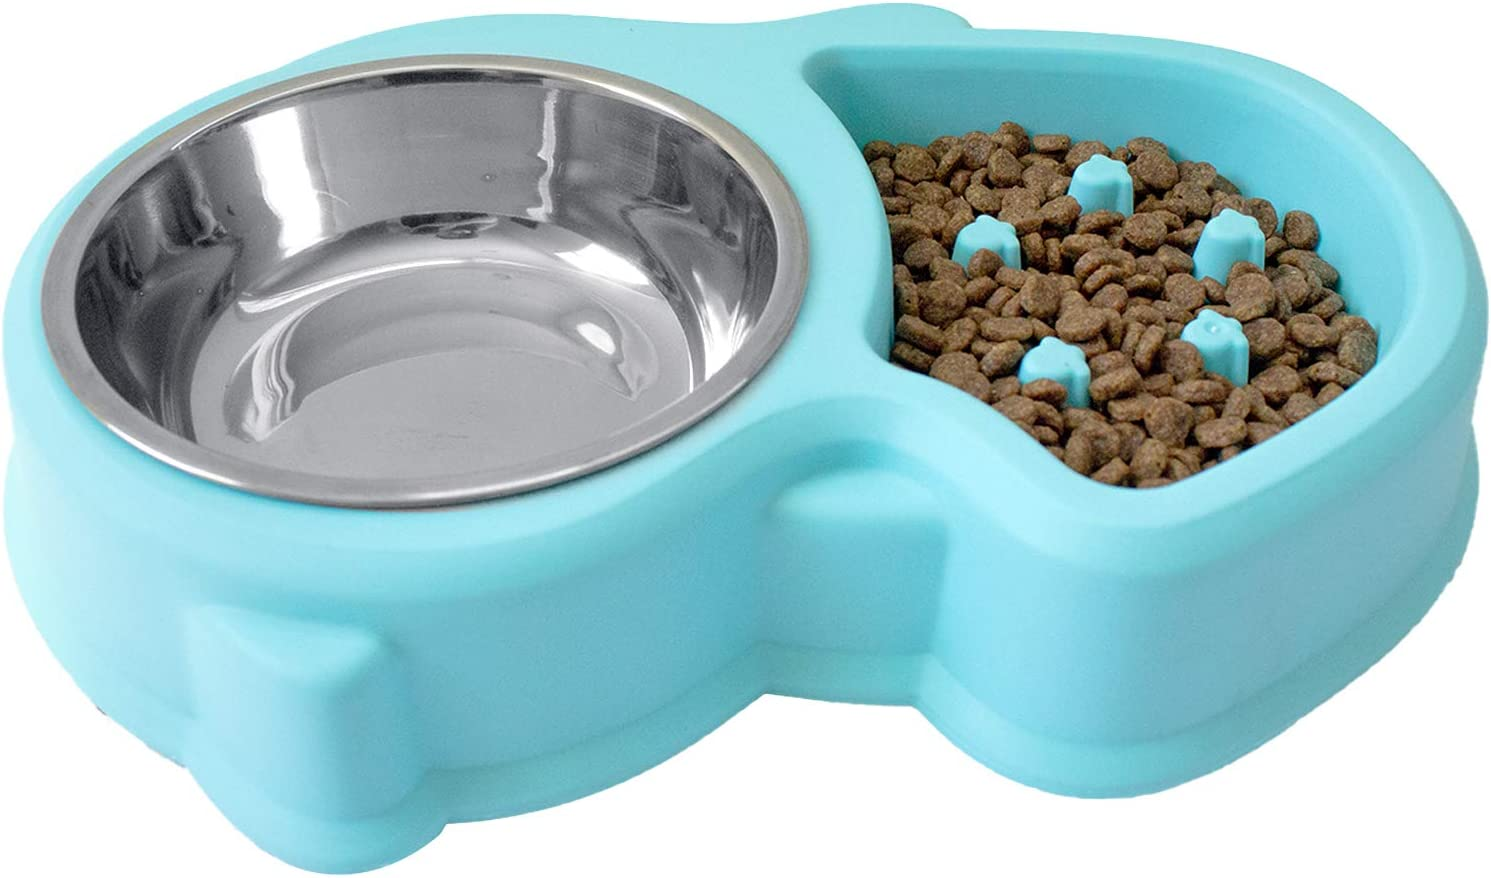 Slow Feed Anti-Choke Pet Bowl Feeder with Stainless Steel Metal Dog Water Bowl - Prevents Pets Eating Quickly Avoids Bloat - Squirrel Pattern (Green, Pink, Blue)